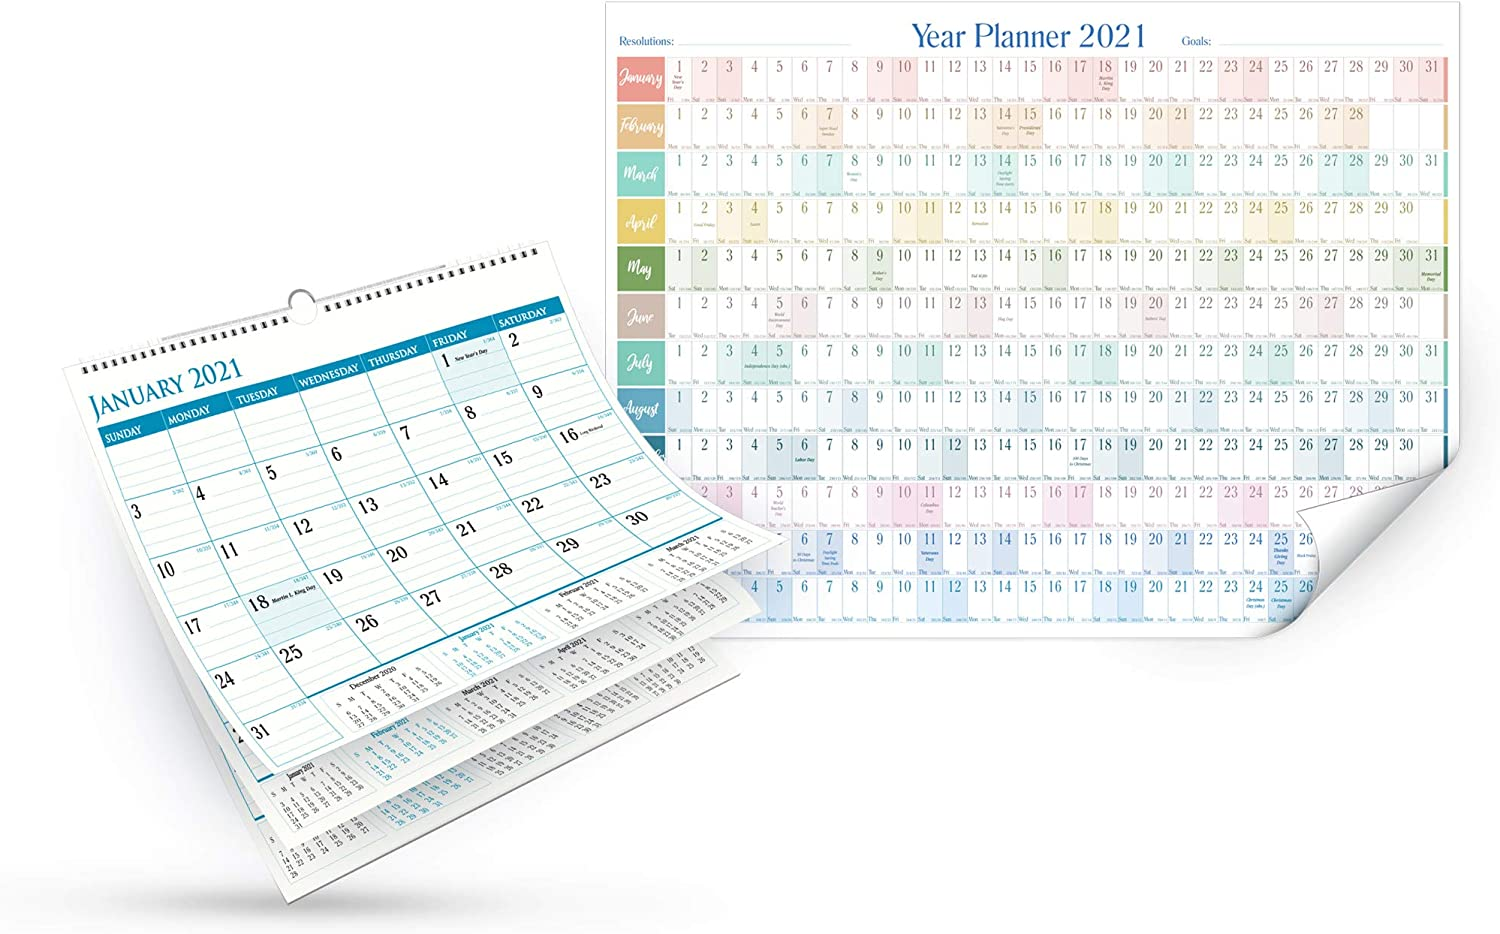 Calendar 2021 and Planner -Set of 2 Calendars, Monthly and Yearly Wall Calendar and Planner with Julian Dates, Long weekends and Holidays. Thick Paper Calendar Perfect for Organizing & Planning Events